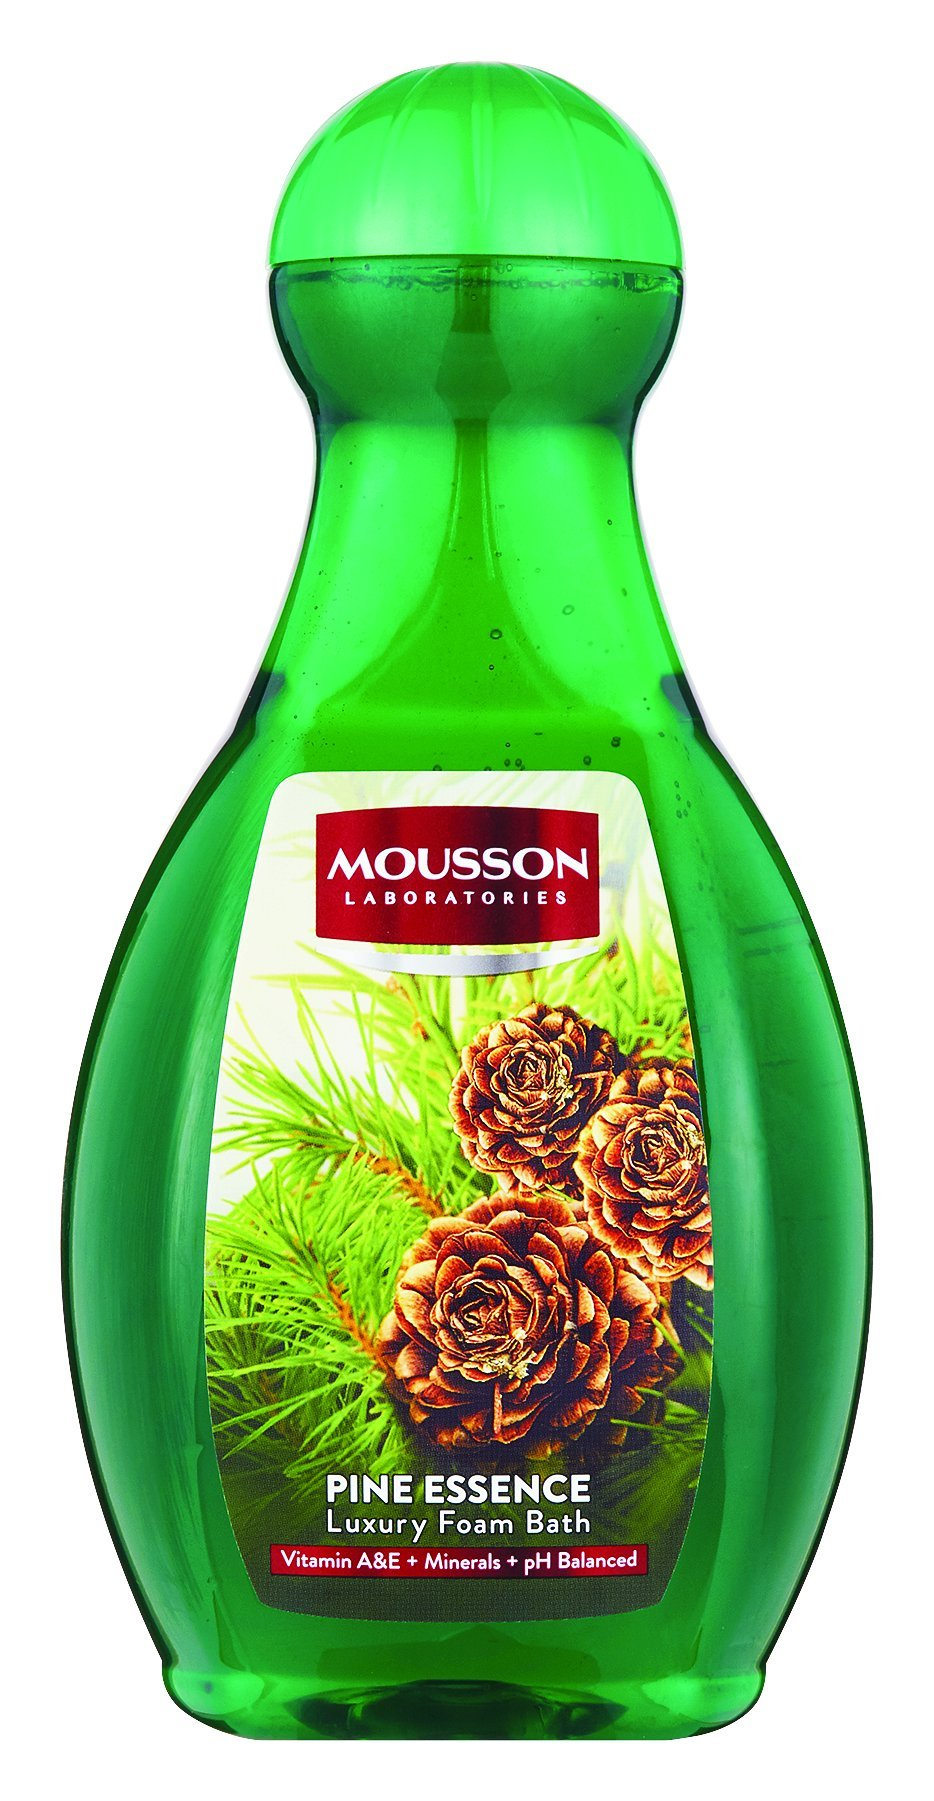 Mousson Bubble Bath - Pine Essence - 2L 6-Pack